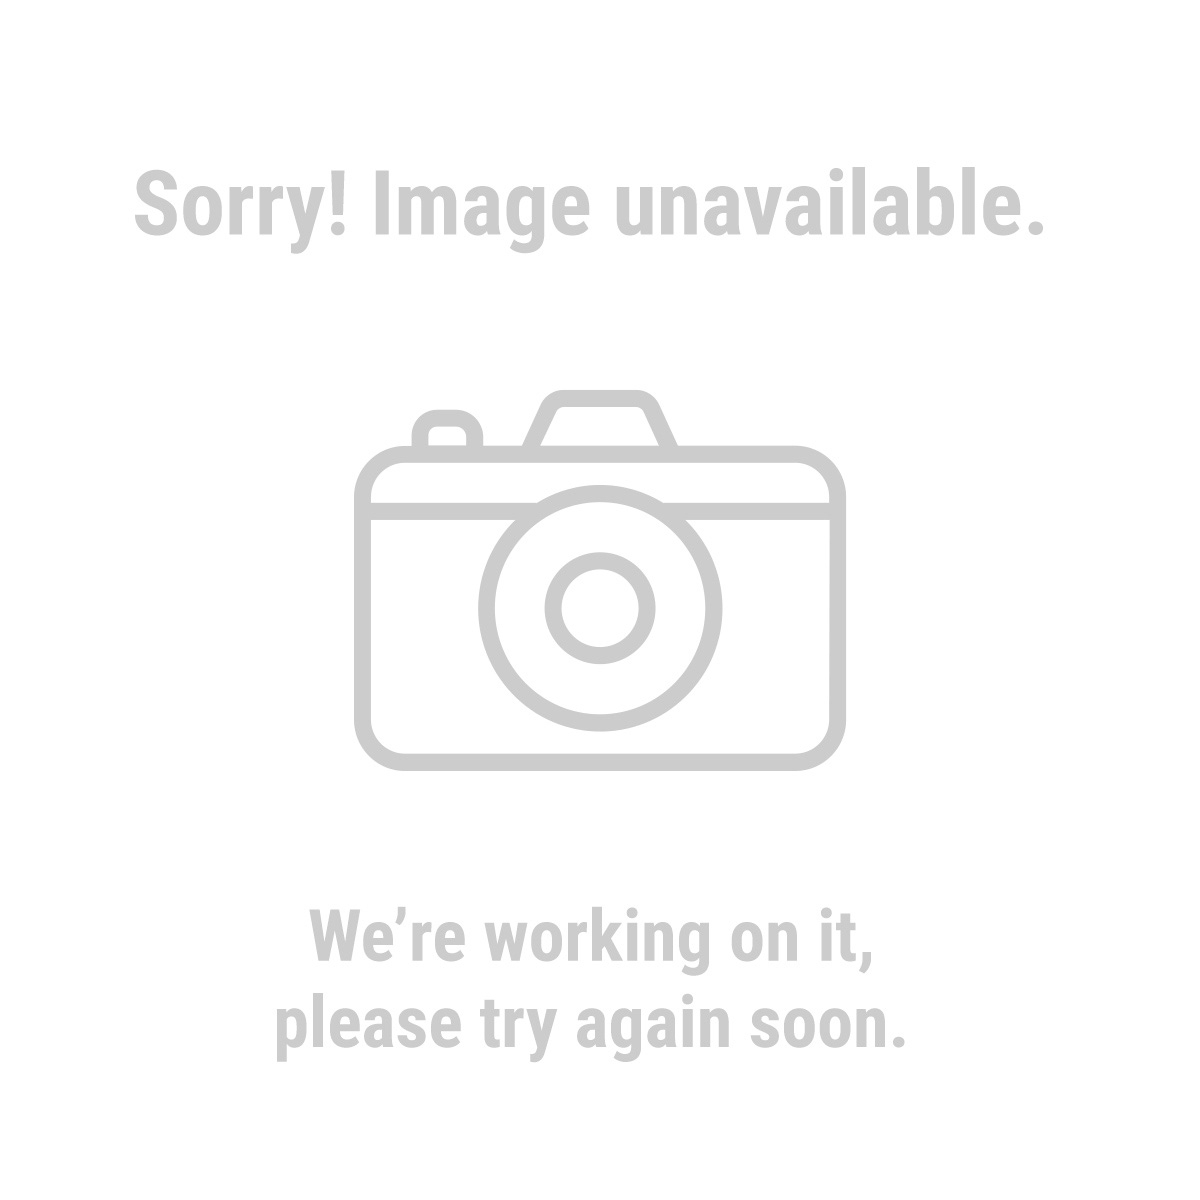 Badland 12000 lb. Electric Winch - $299.99 | IH8MUD Forum